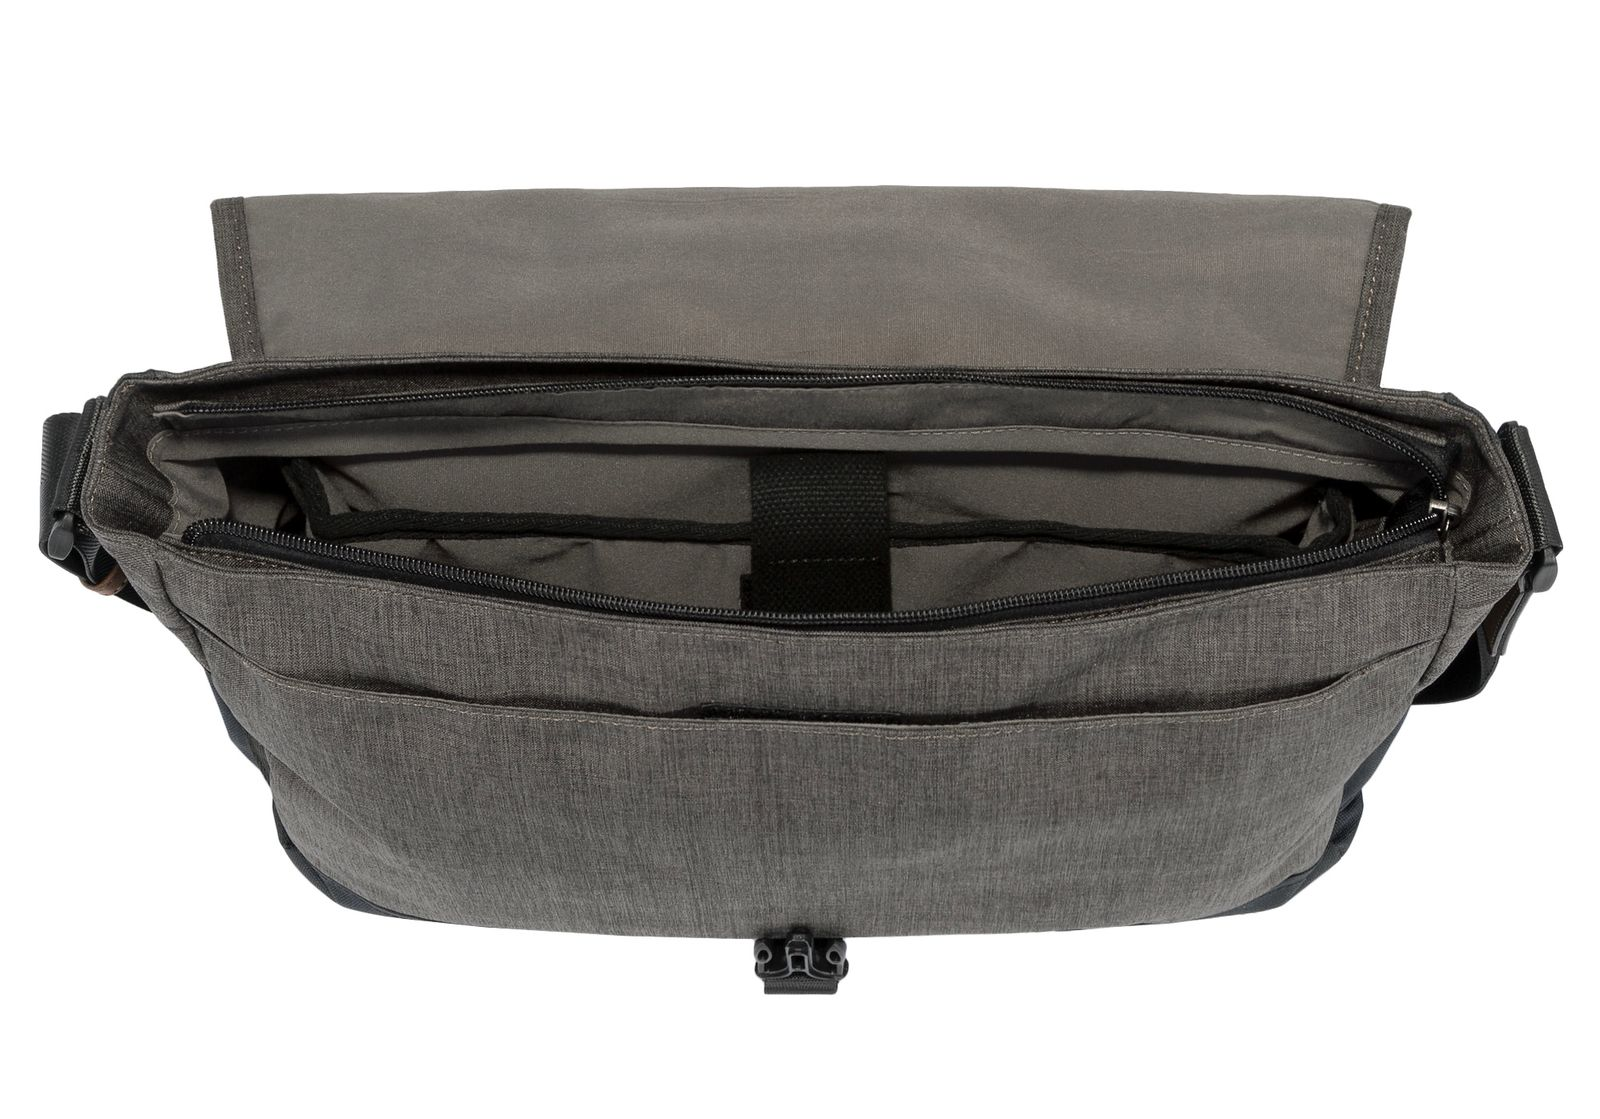 ... Closecamel active Indonesia Messenger Bag Grey   53 8a1541d002